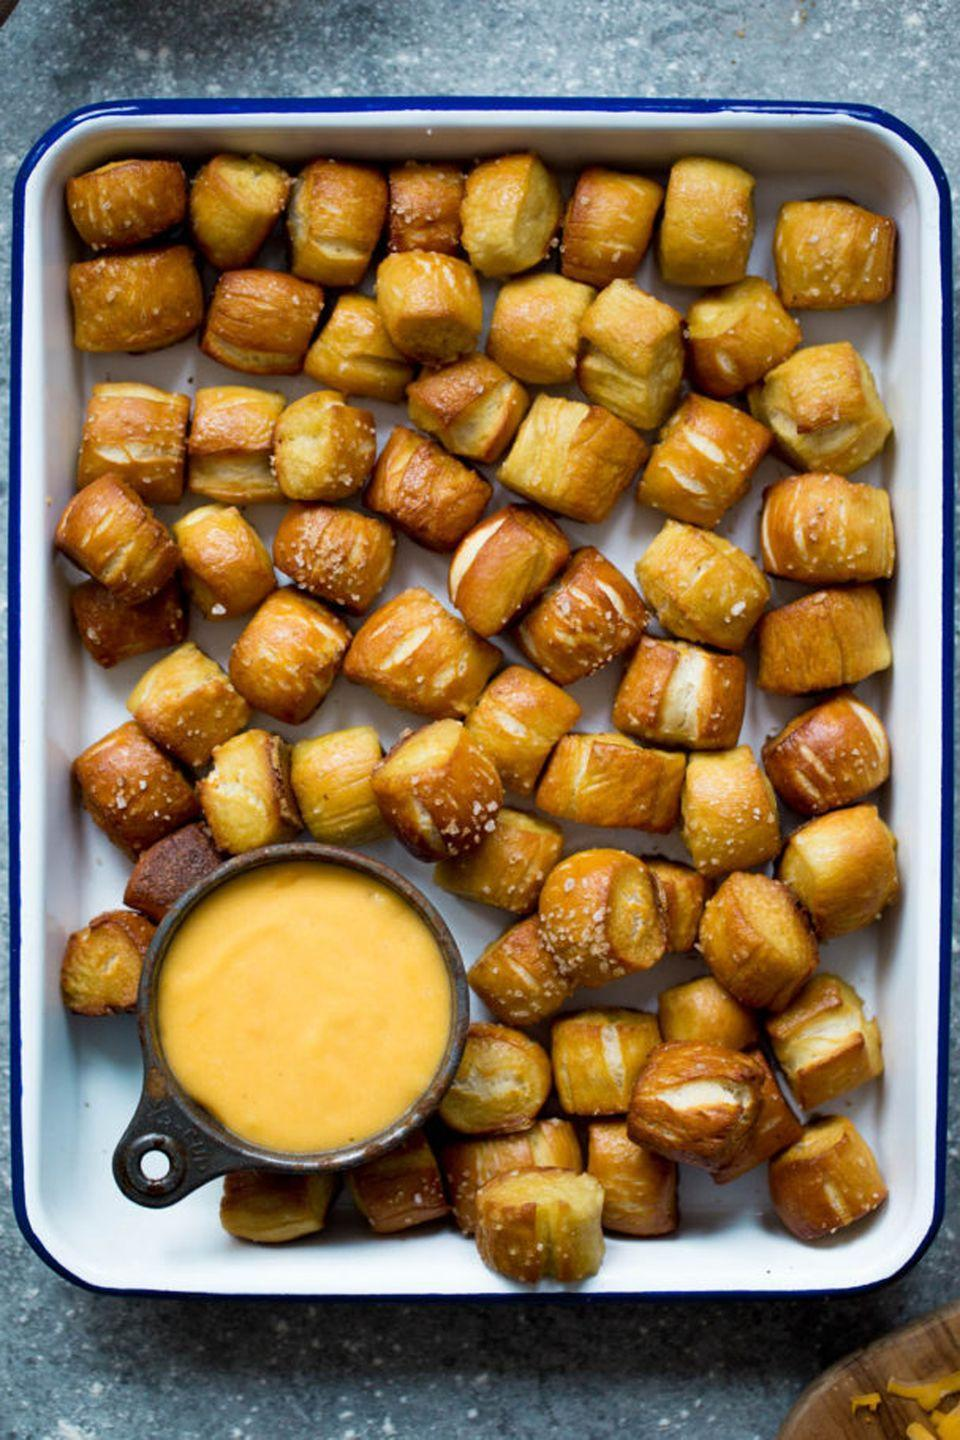 "<p>Dipping is the best part of this match-up featuring soft pretzel bites and a cheddar cheese sauce. </p><p><strong>Get the recipe at <a href=""http://www.twopeasandtheirpod.com/homemade-soft-pretzel-bites/"" rel=""nofollow noopener"" target=""_blank"" data-ylk=""slk:Two Peas and Their Pod"" class=""link rapid-noclick-resp"">Two Peas and Their Pod</a>.</strong> </p>"